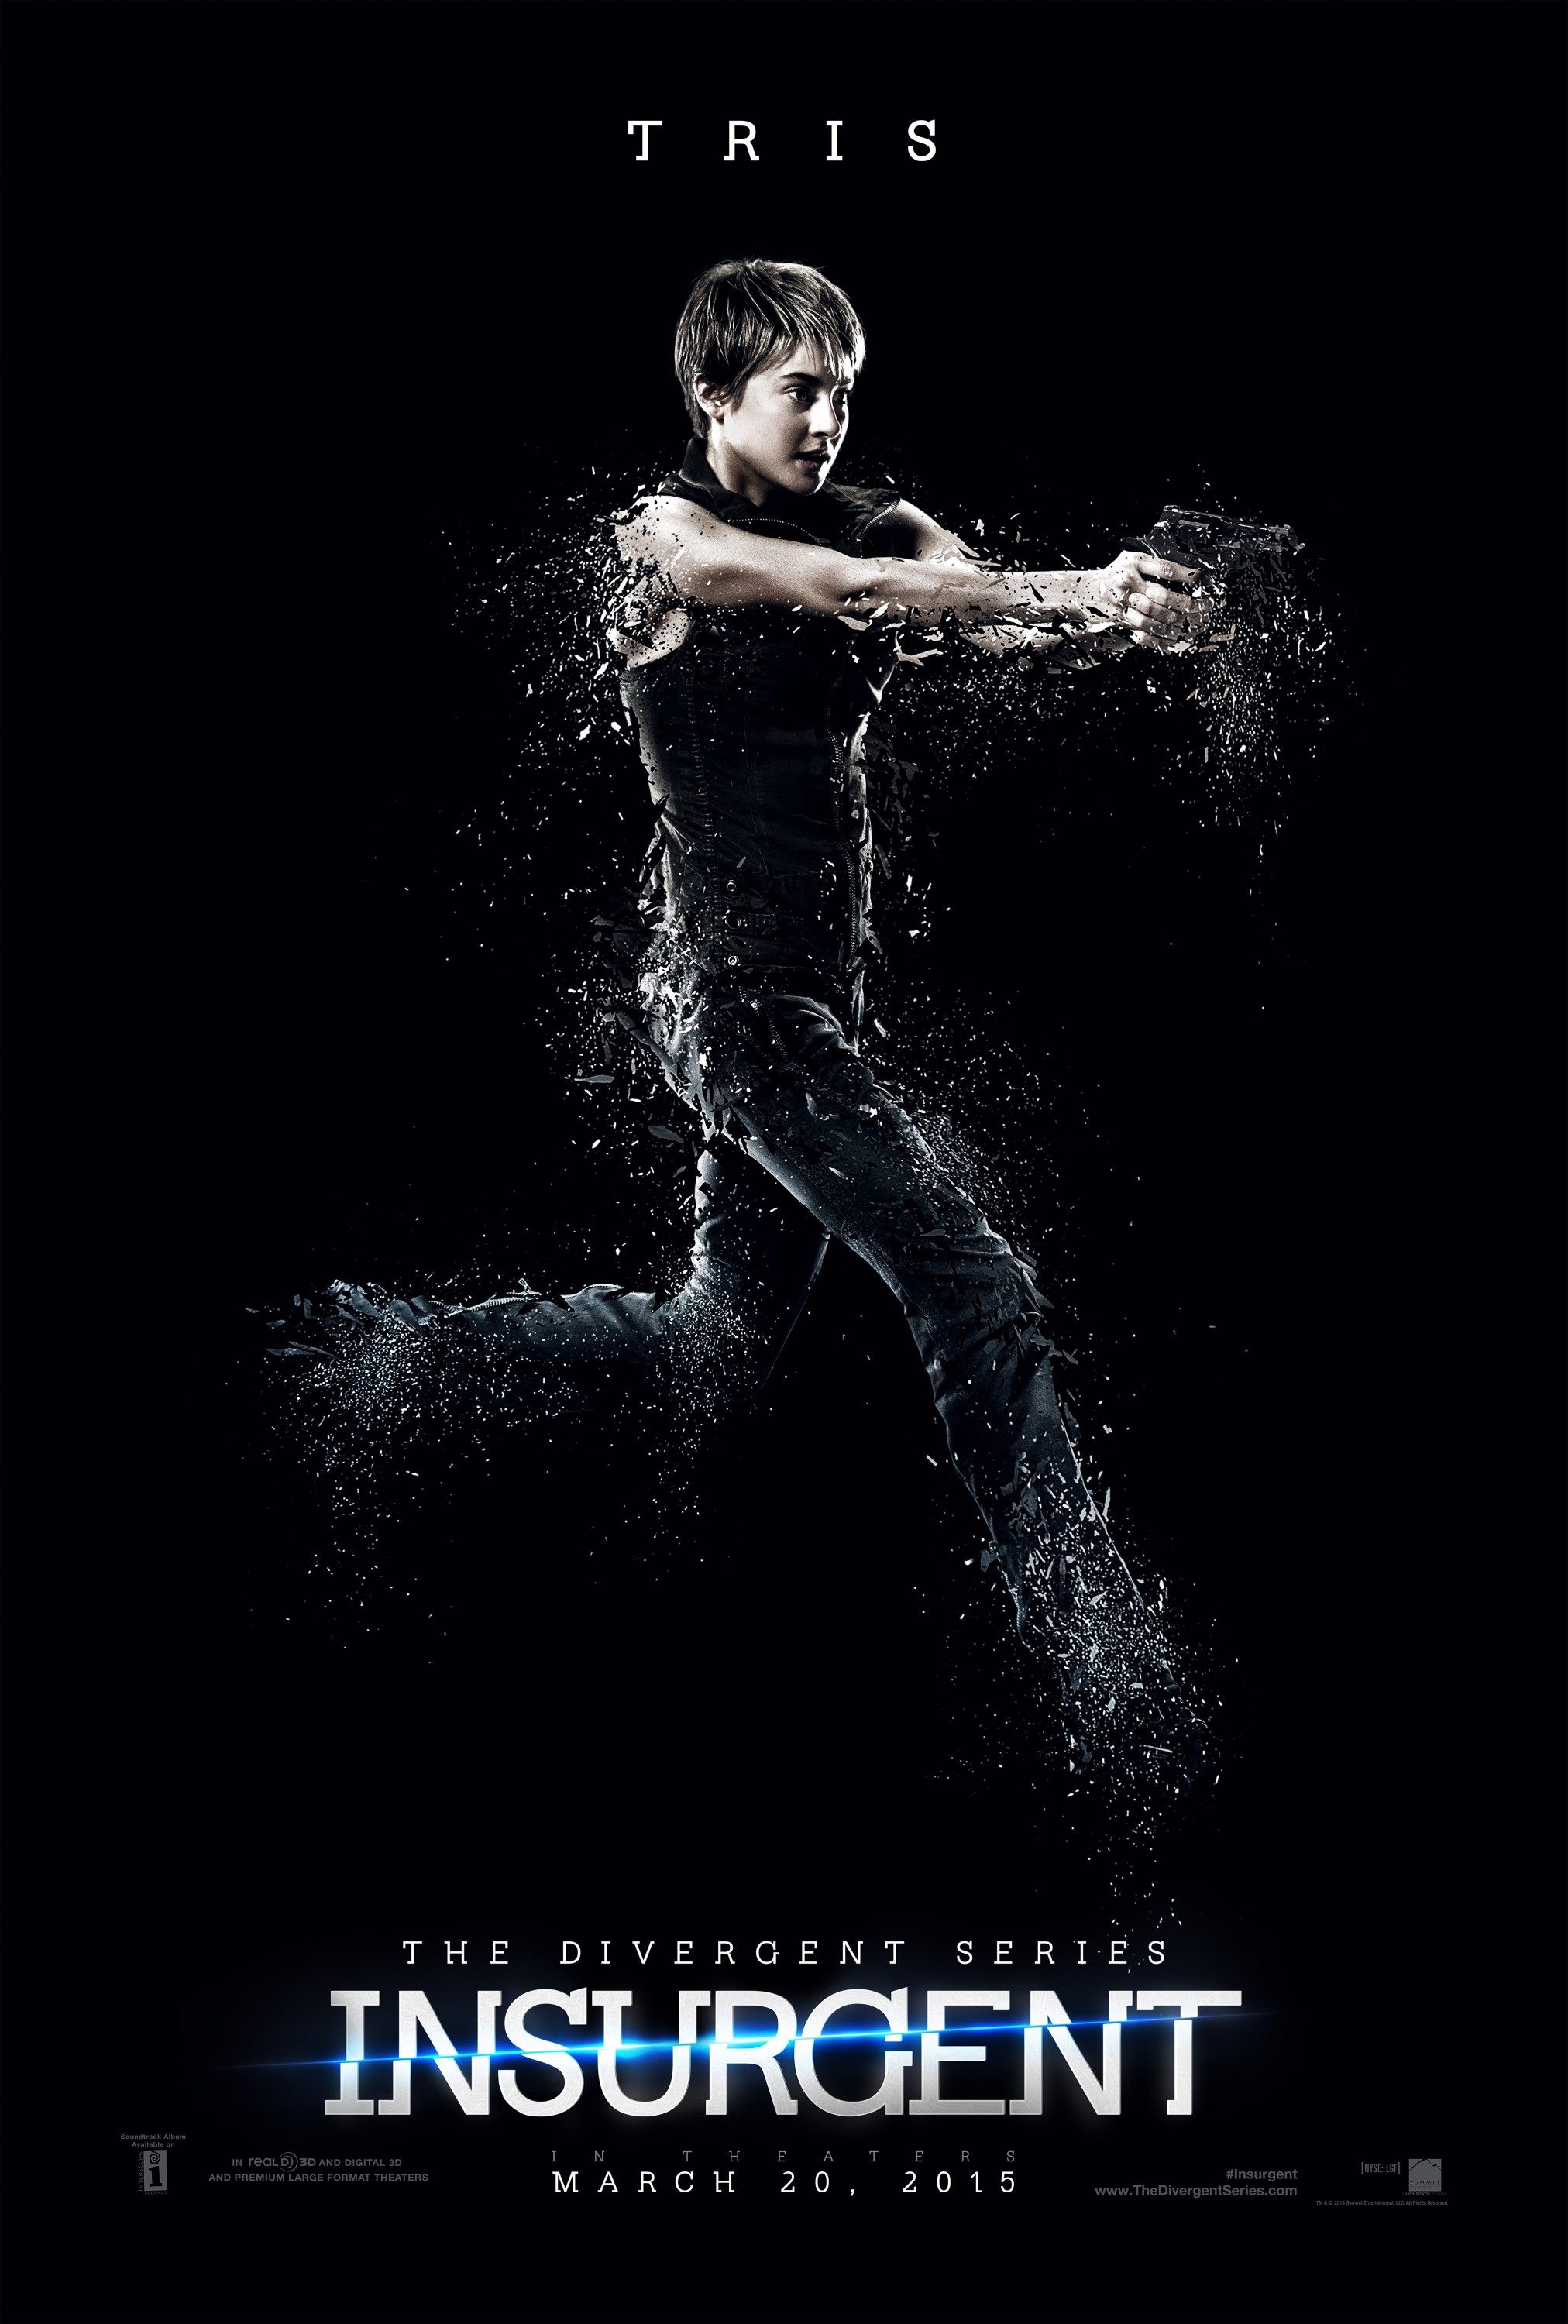 Insurgent-Official Poster XXLG-30OUTUBRO2014-01